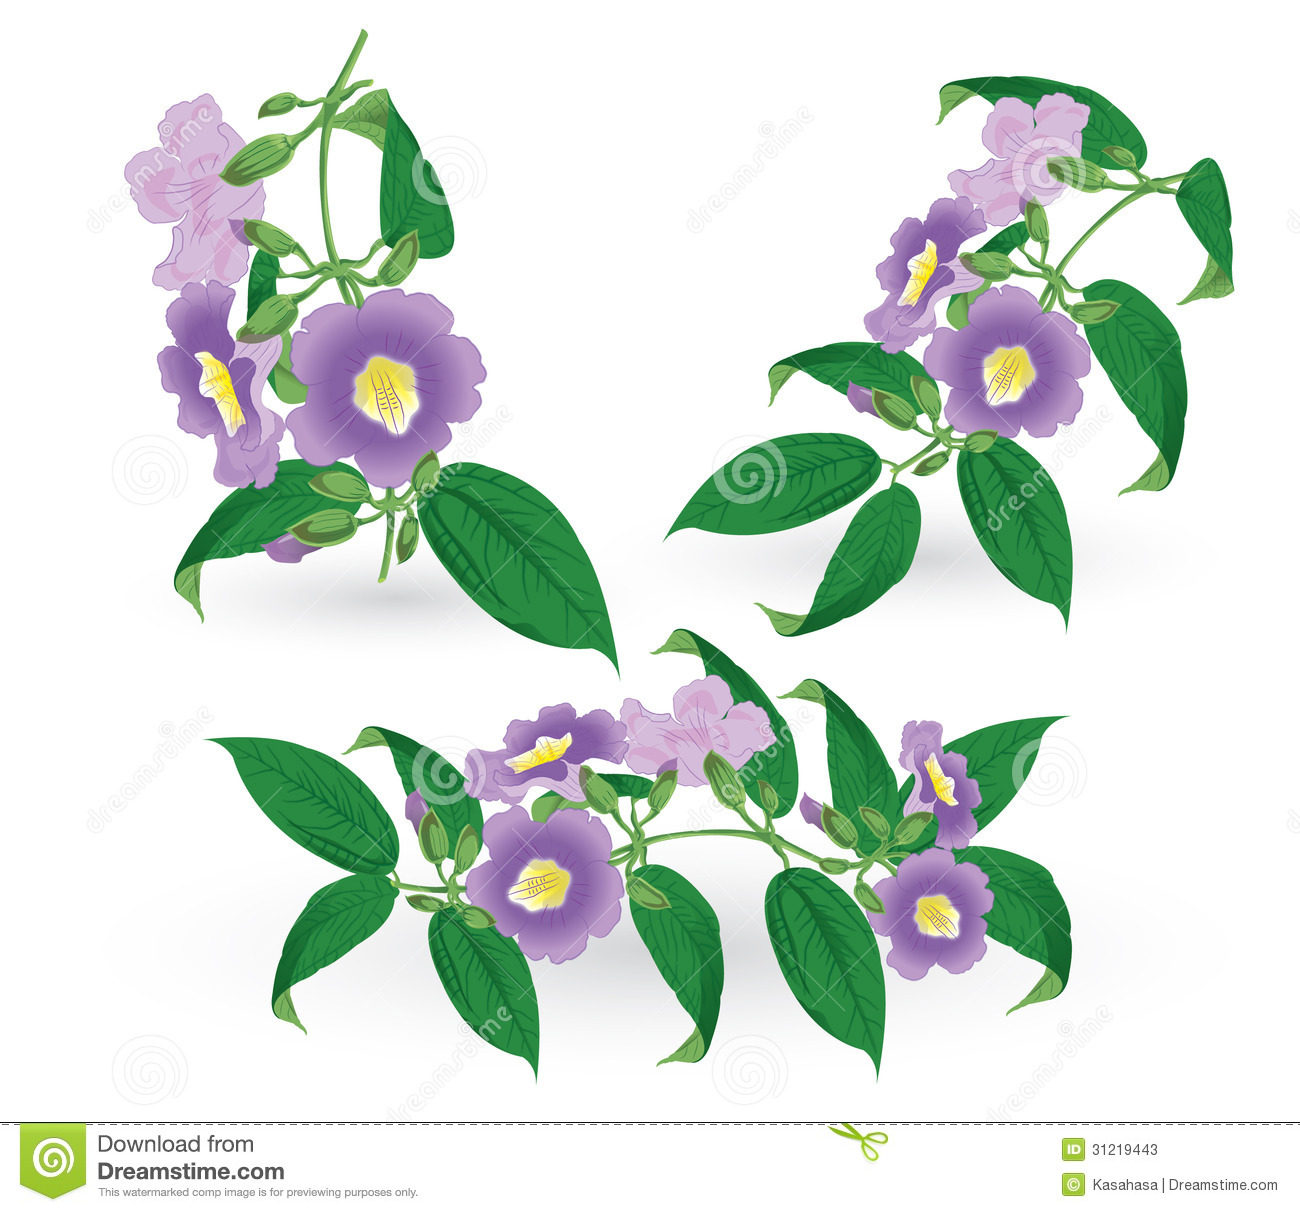 Thunbergia Stock Photos, Images, & Pictures.